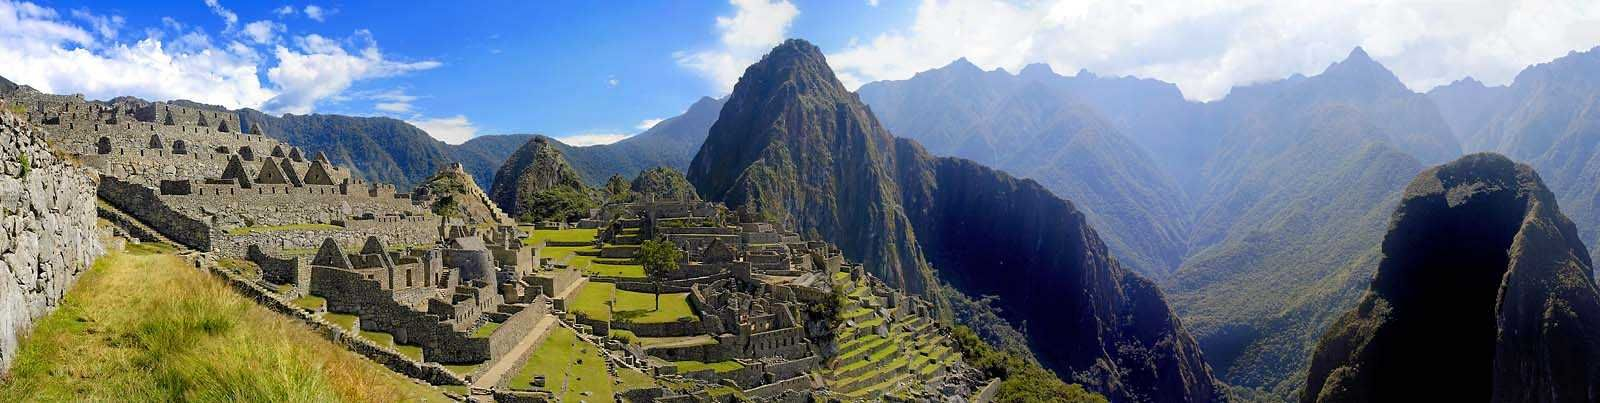 Machu Picchu Panorama View- I didn't think I'd like to go there, but it's the #1 place to go on a lot of lists, so maybe I should!